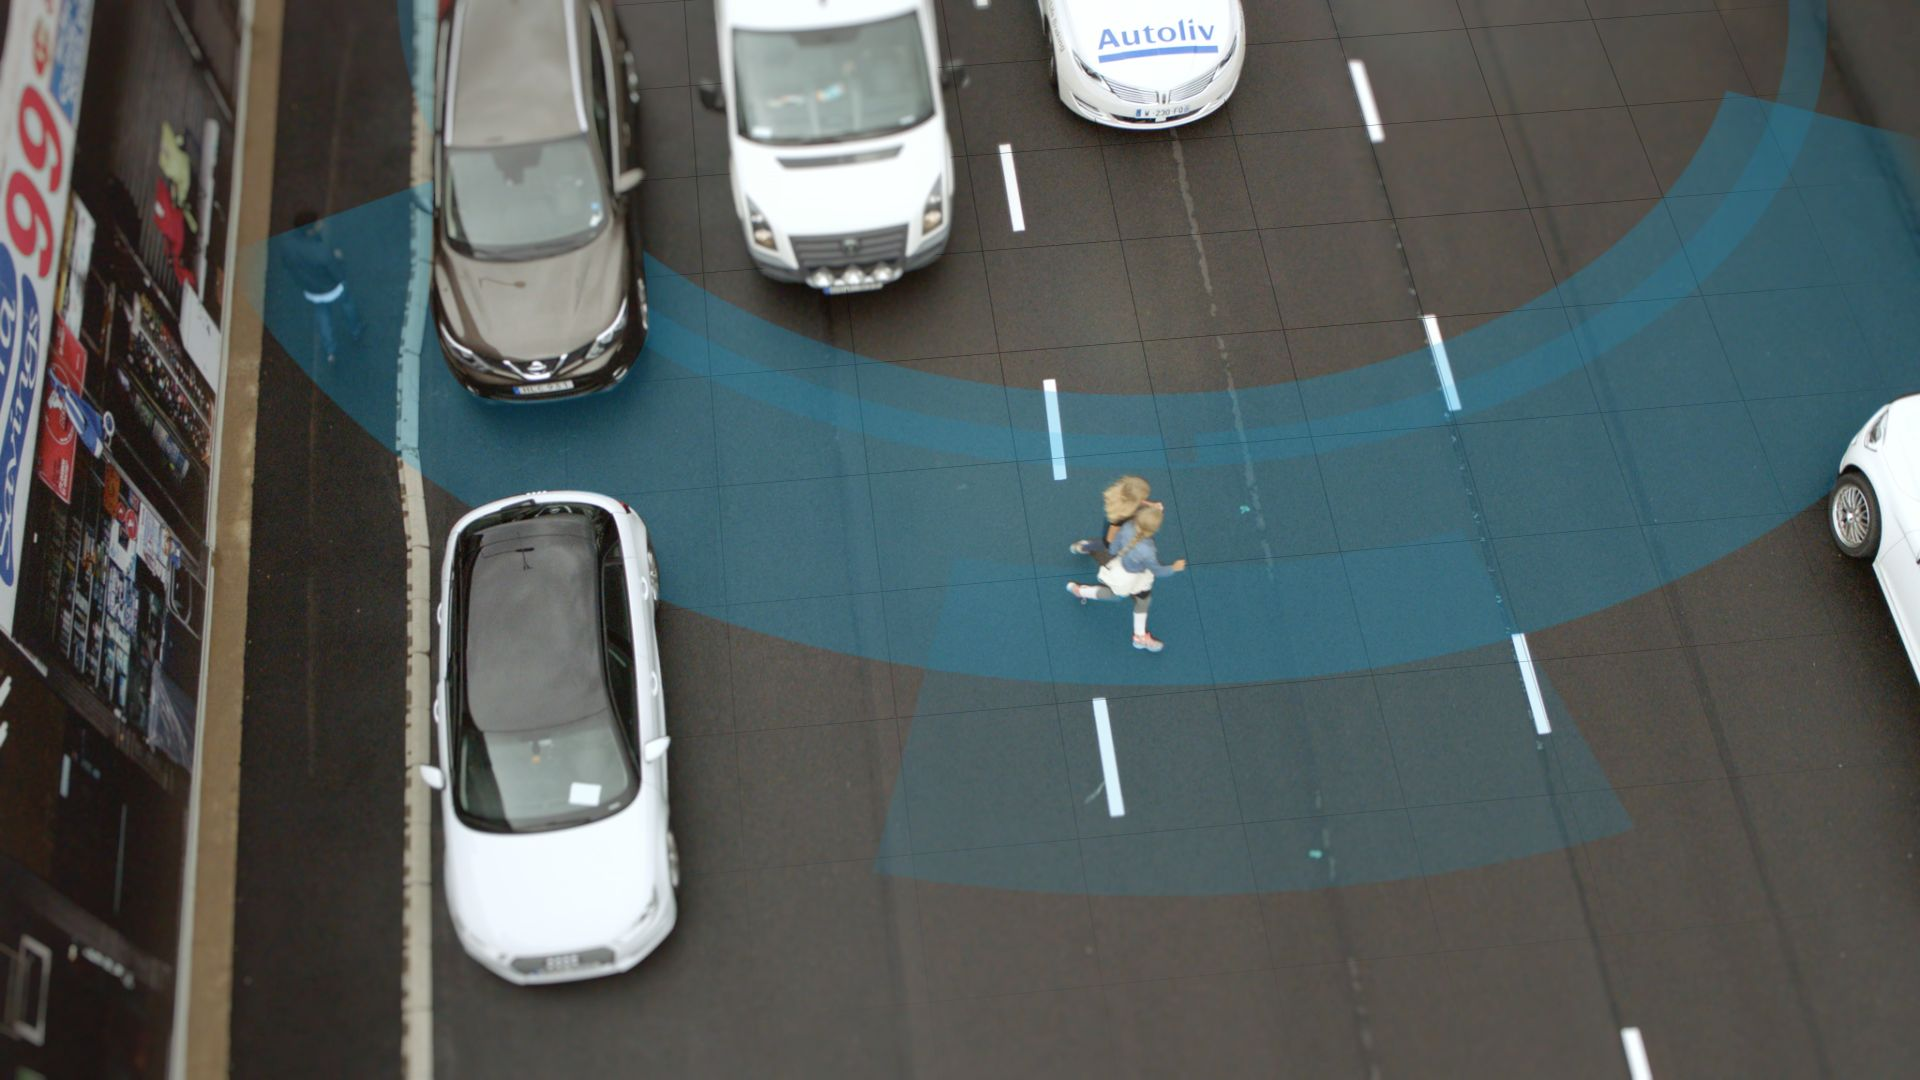 ALV_Sensor_Pedestrian Detection_Real Life Traffic Situation (ped crossing)_Illustration